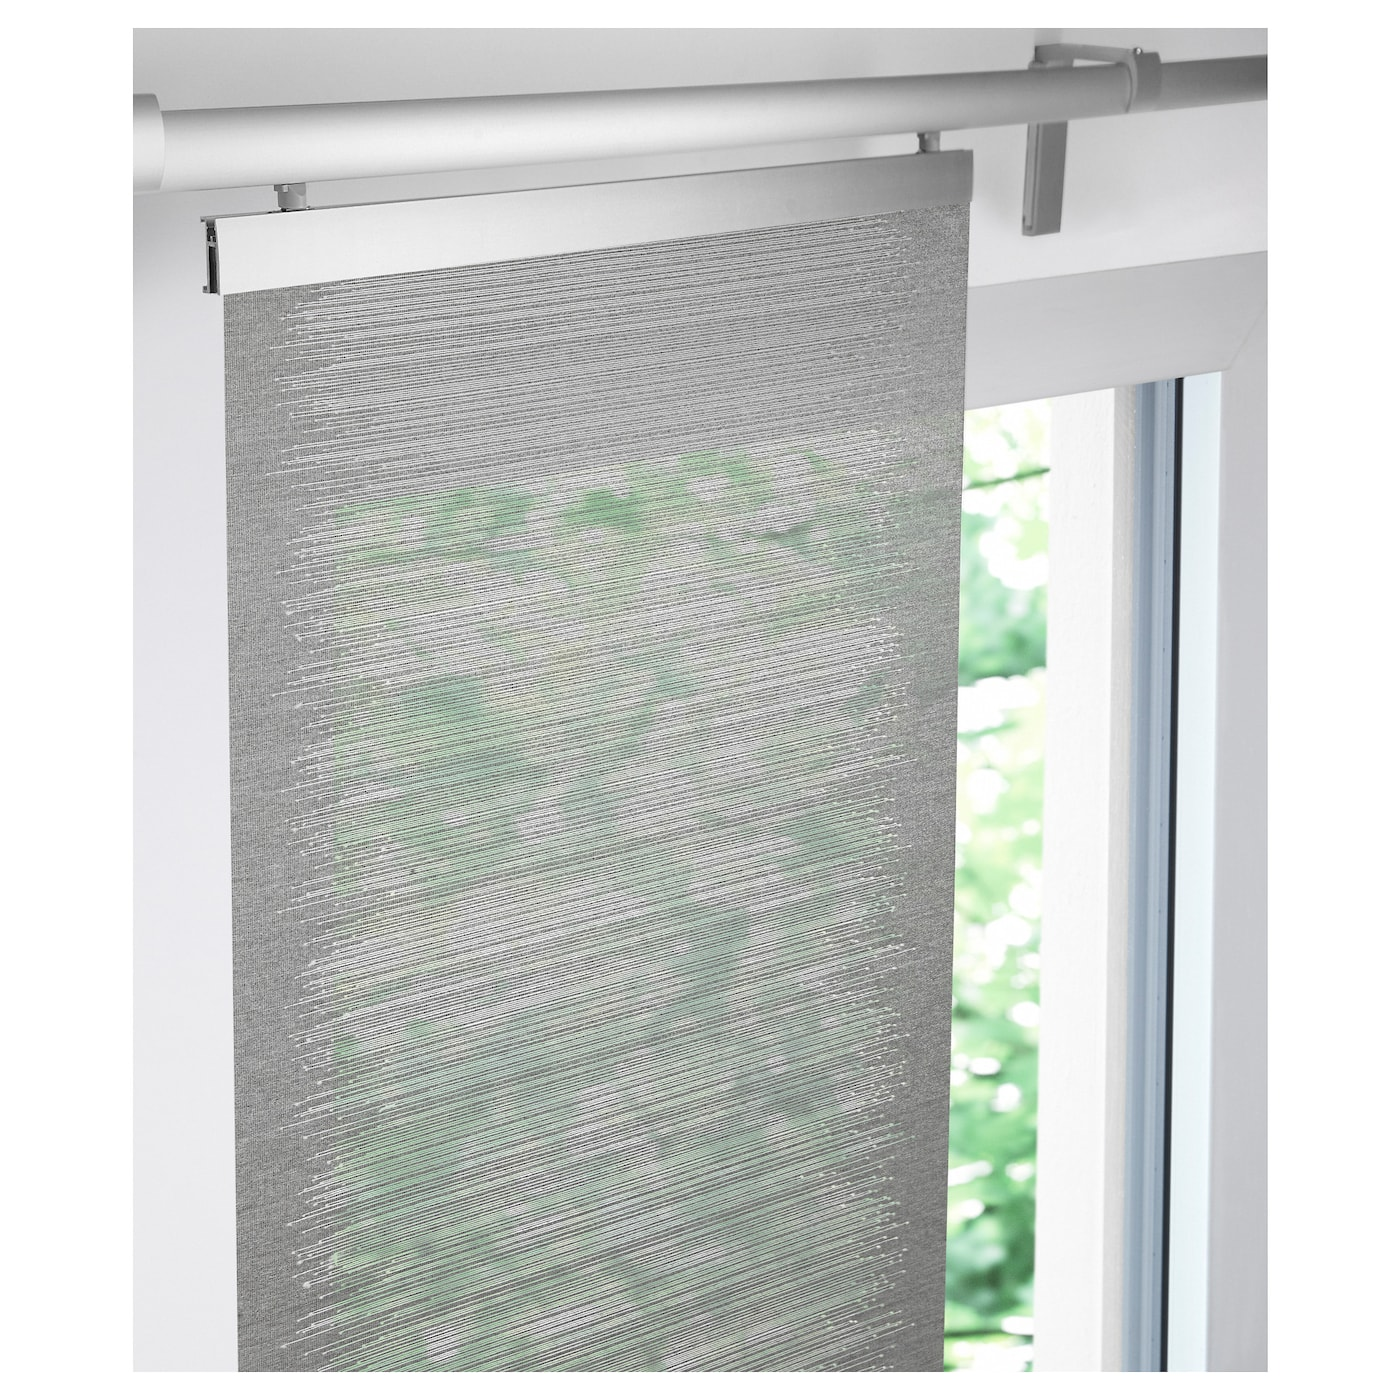 Vattenax panel curtain grey white 60x300 cm ikea for White curtains ikea